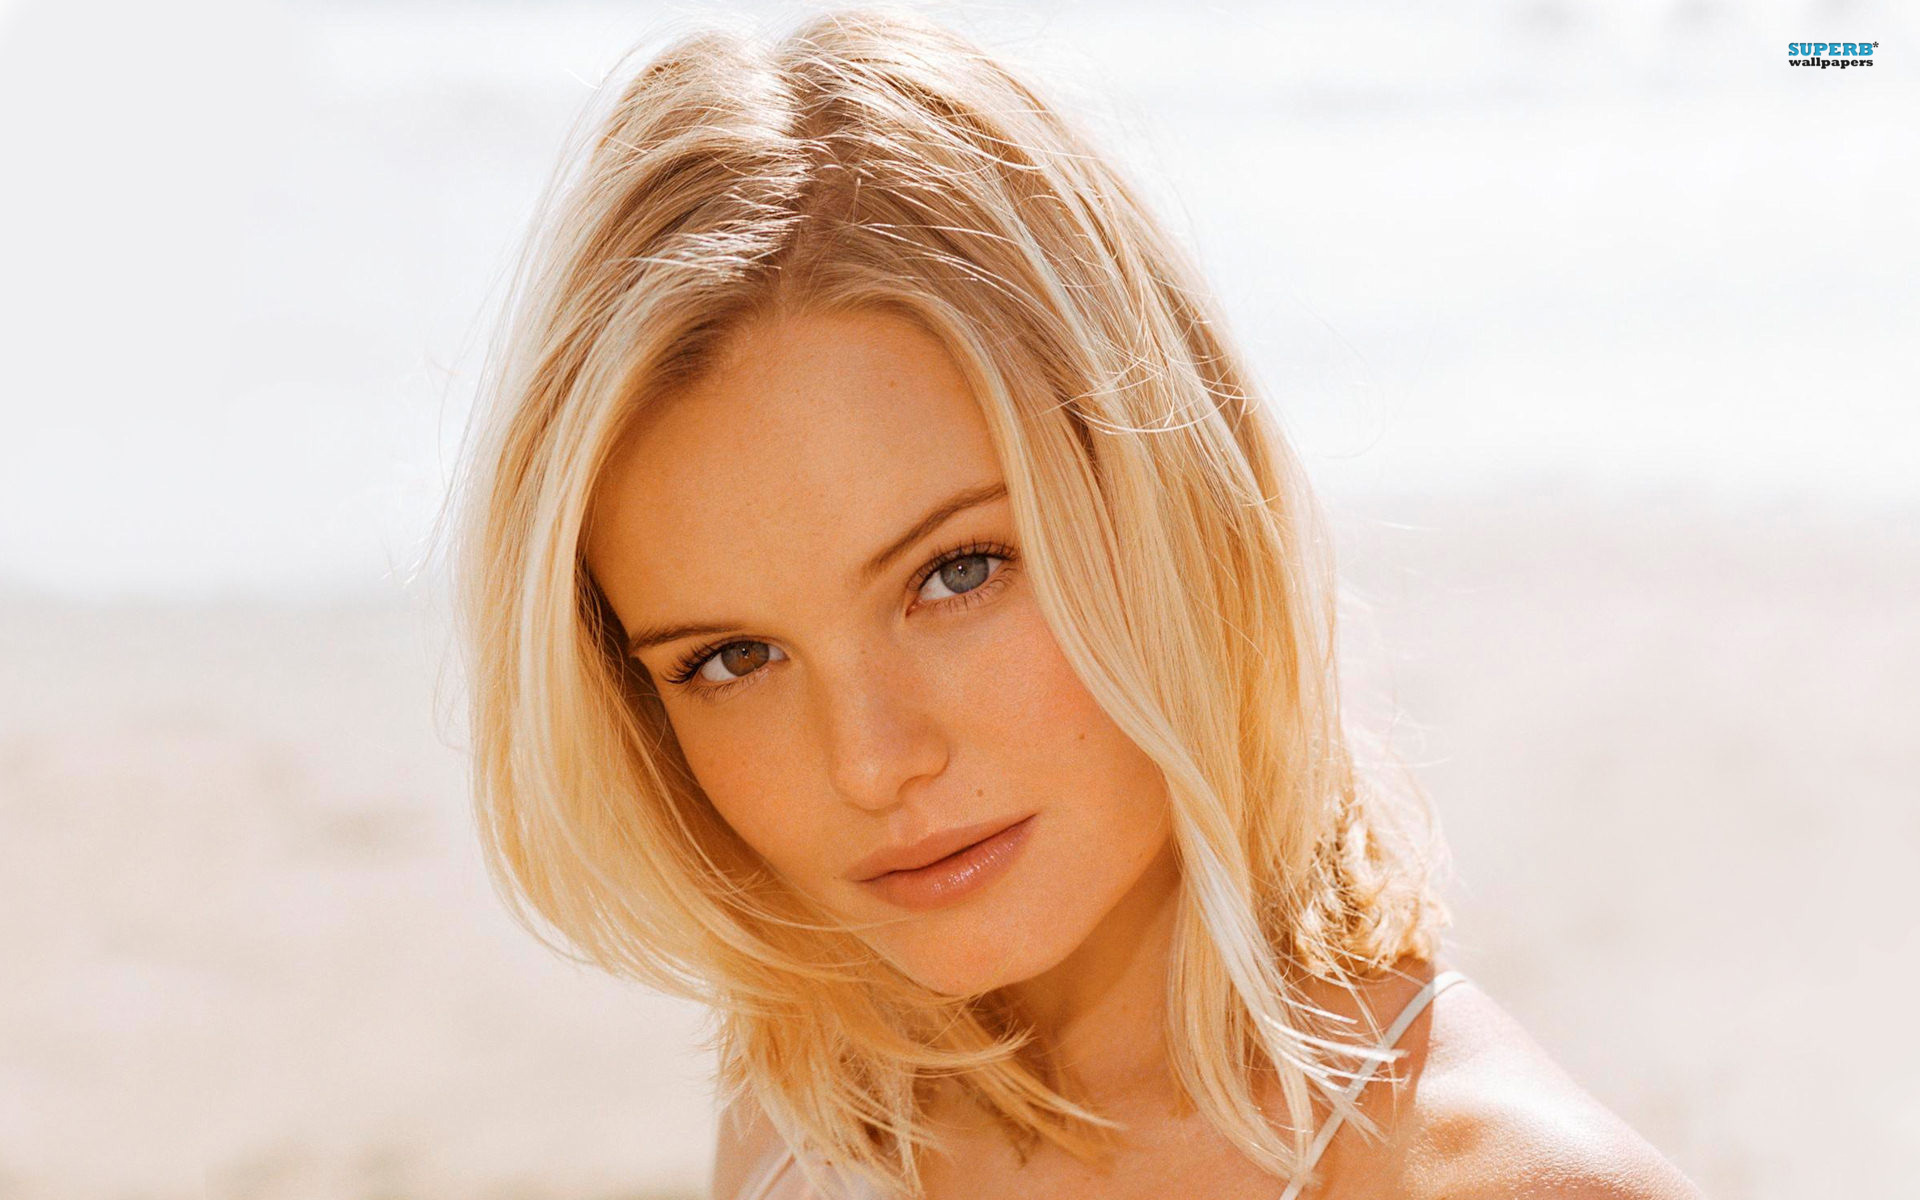 Kate Bosworth Wallpapers High Resolution and Quality Download Kate Bosworth